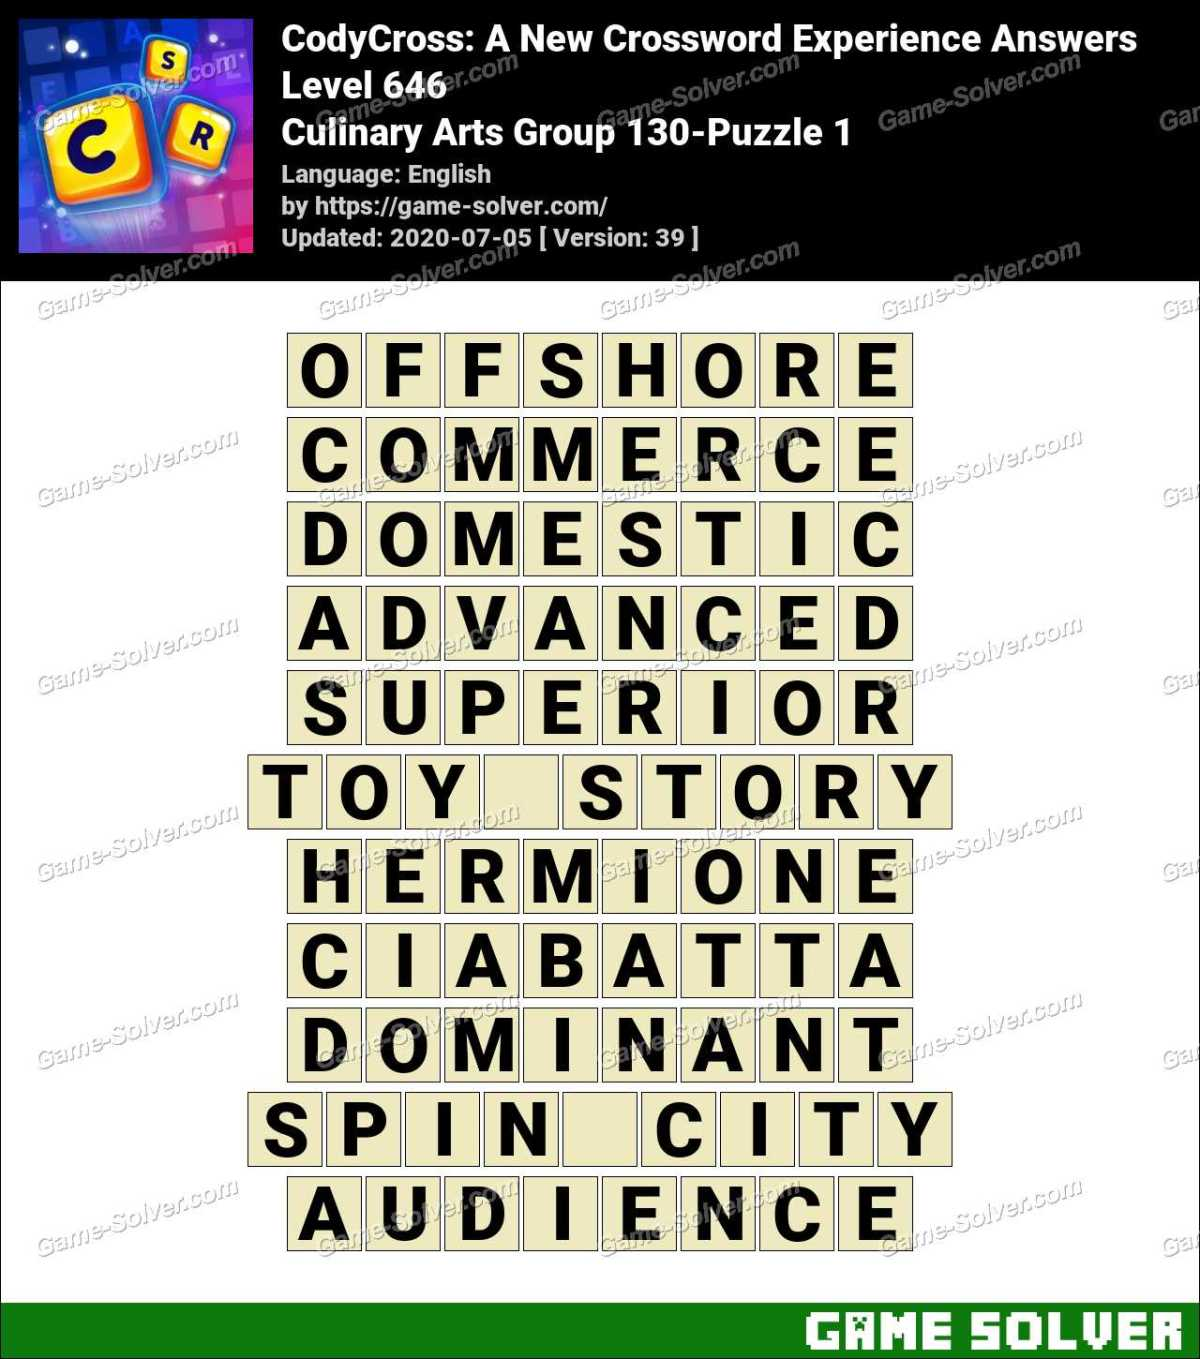 CodyCross Culinary Arts Group 130-Puzzle 1 Answers